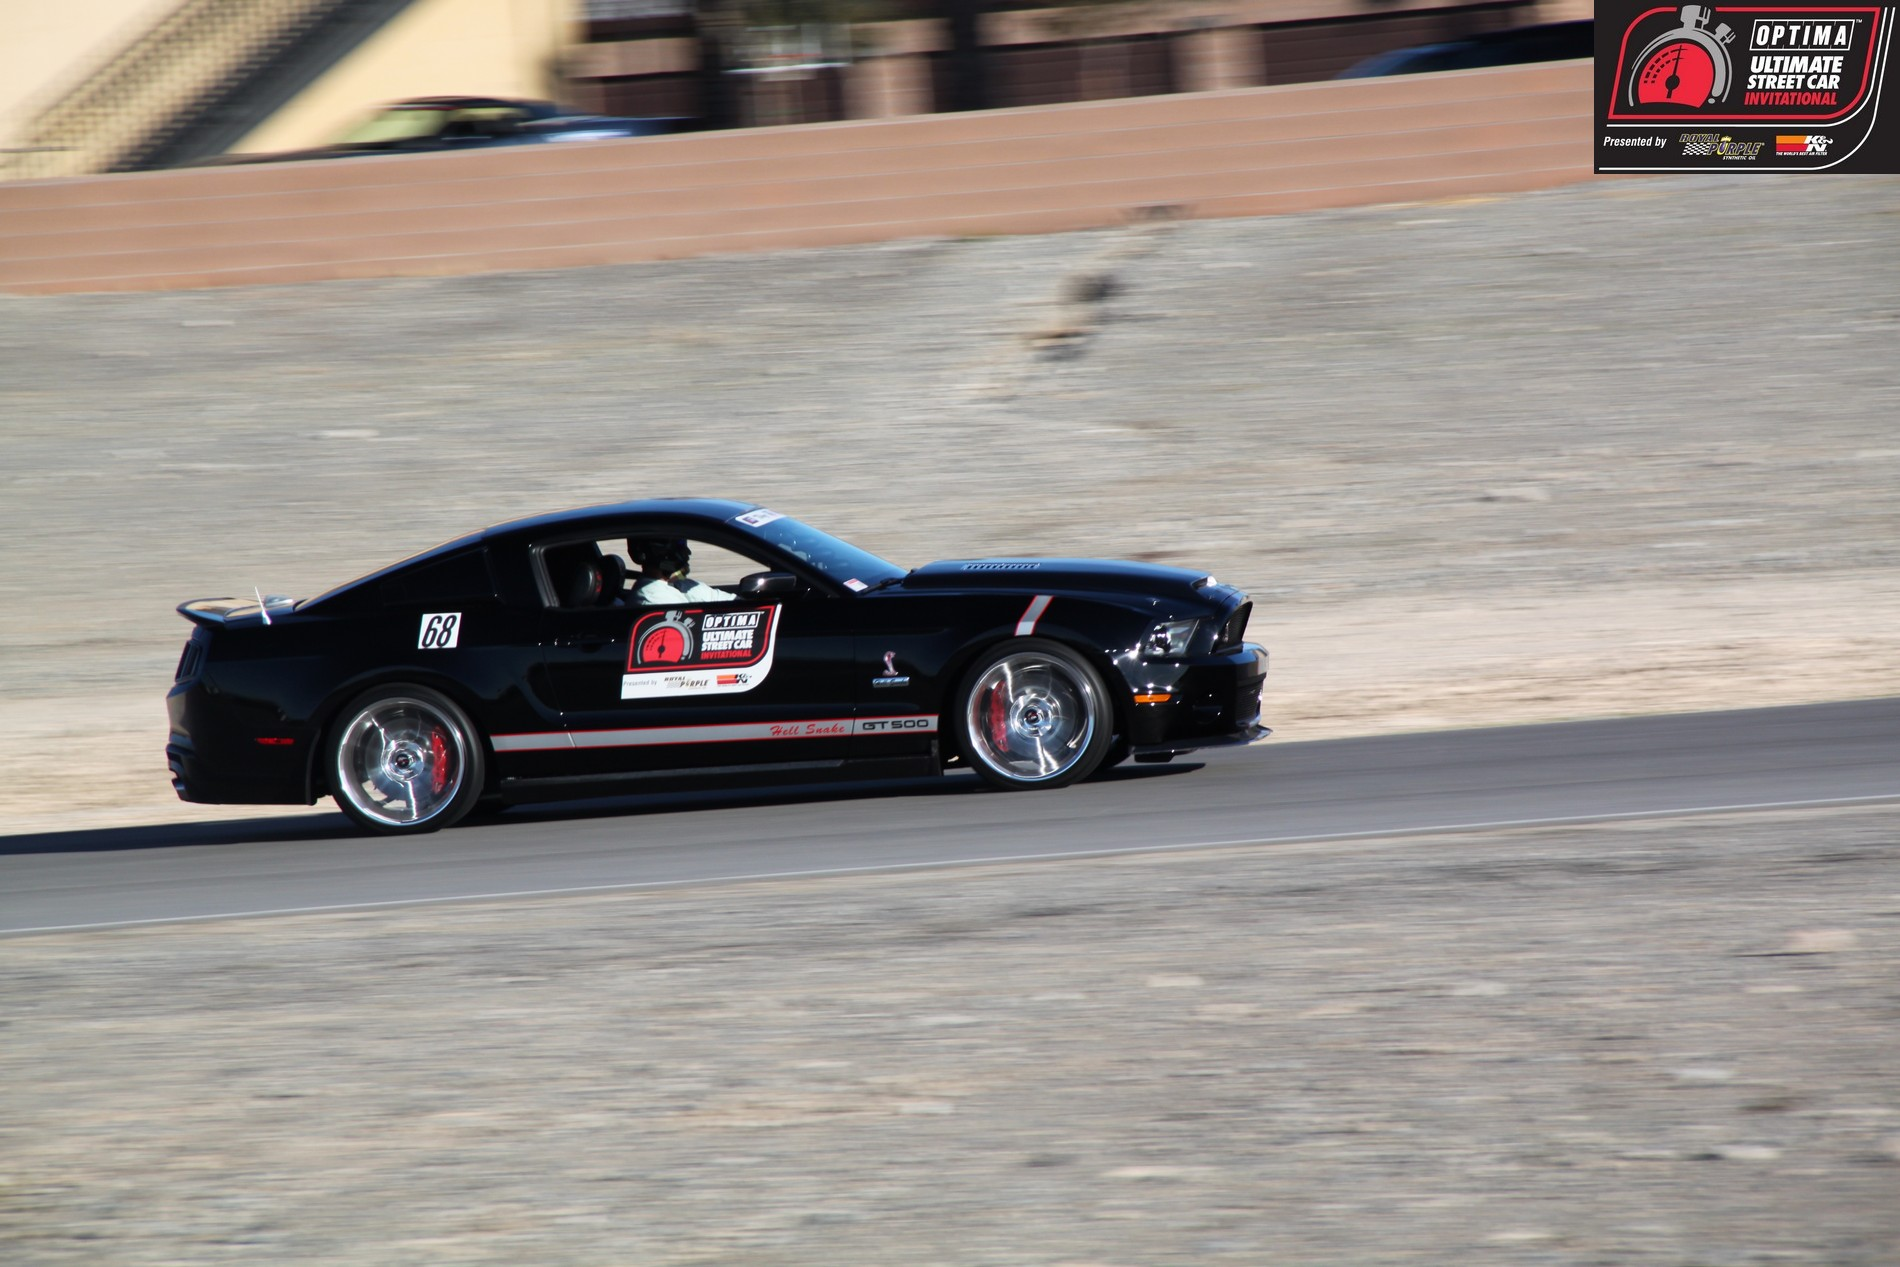 OUSCI Competitor Dave Pulley's 2010 Ford Mustang Shelby GT500